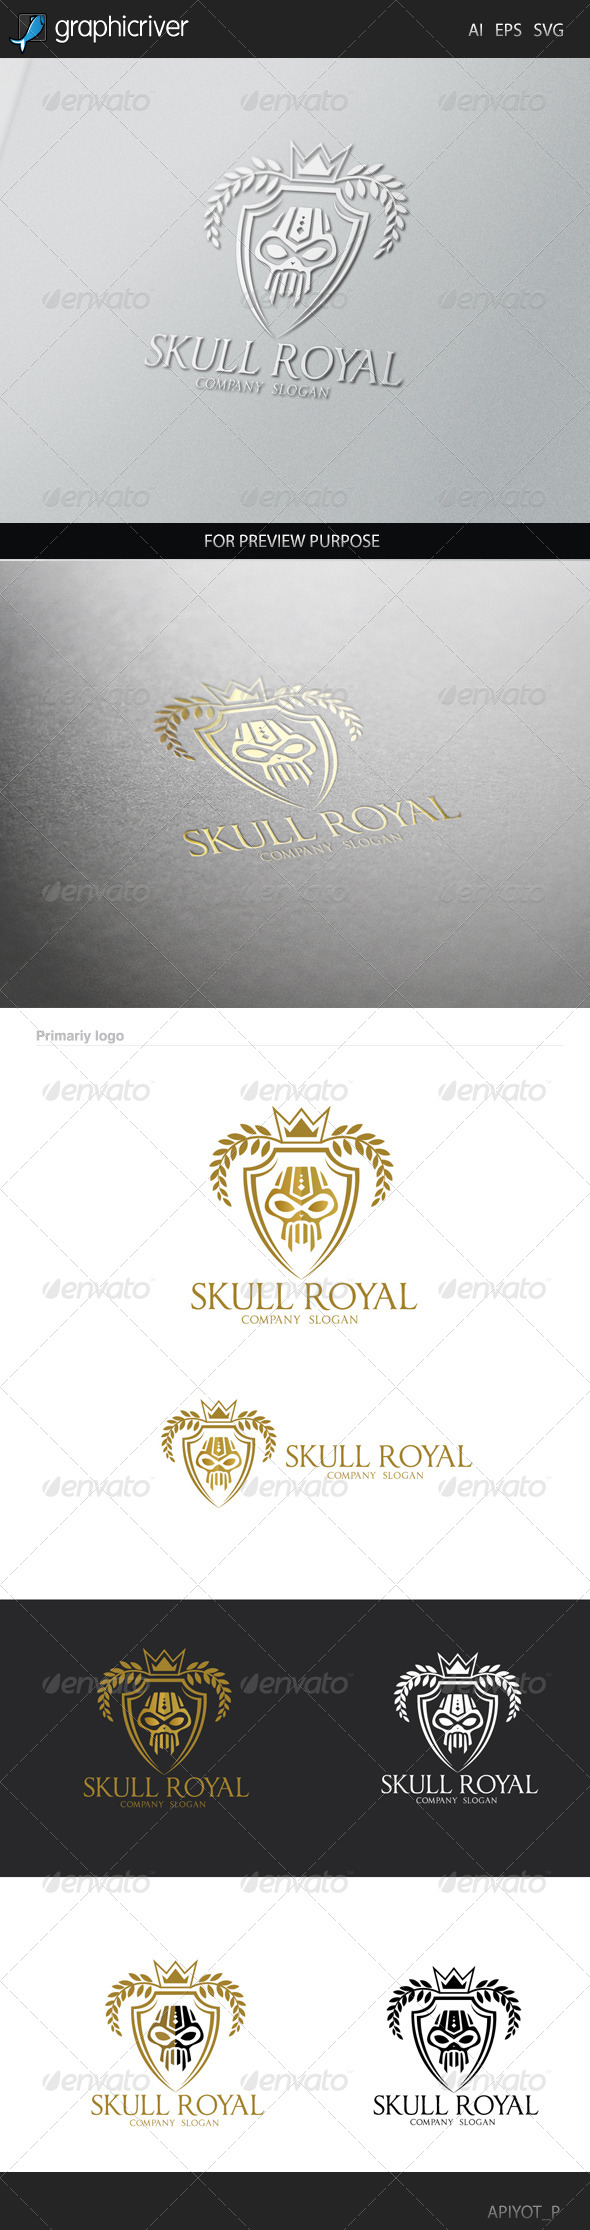 Skull Royal Logo